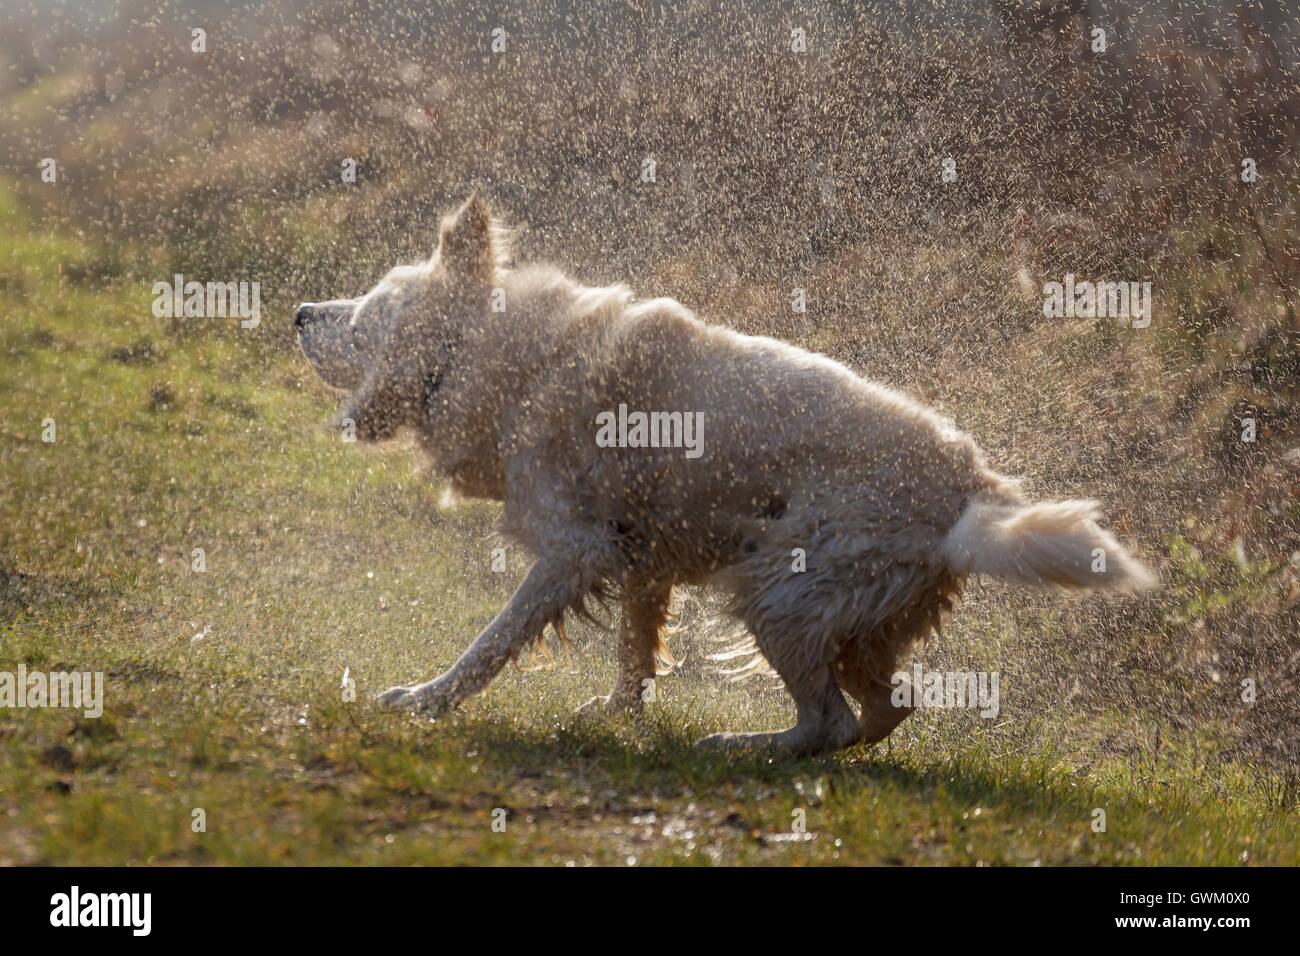 dog shaking water to dry off Stock Photo